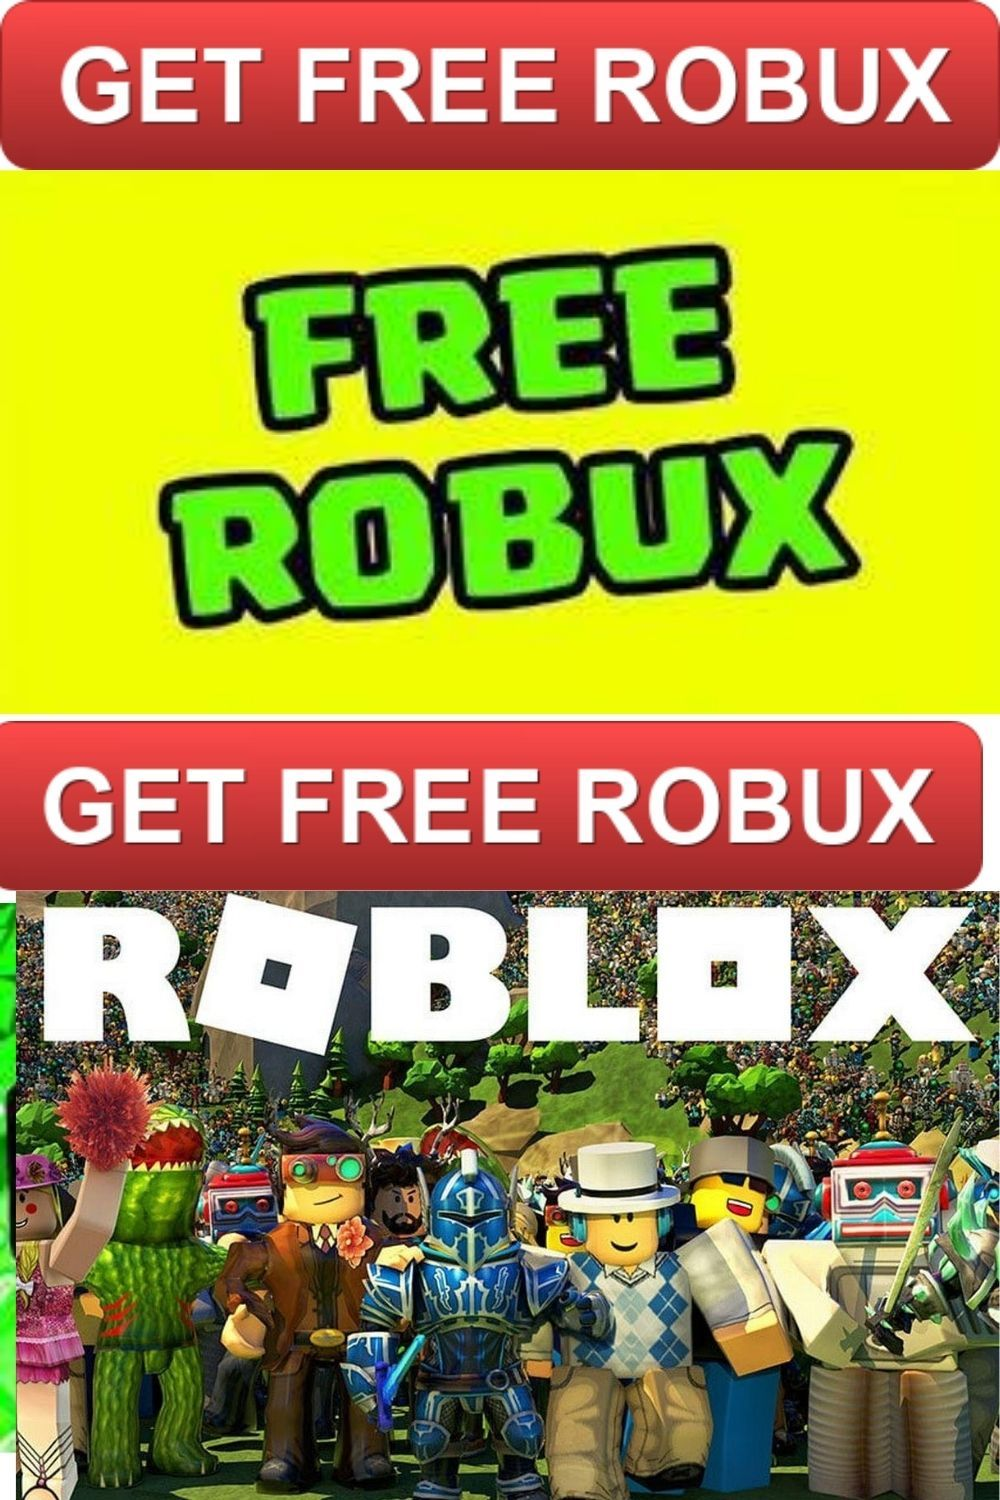 Free robux generator 2020 free robux promo codes in 2020